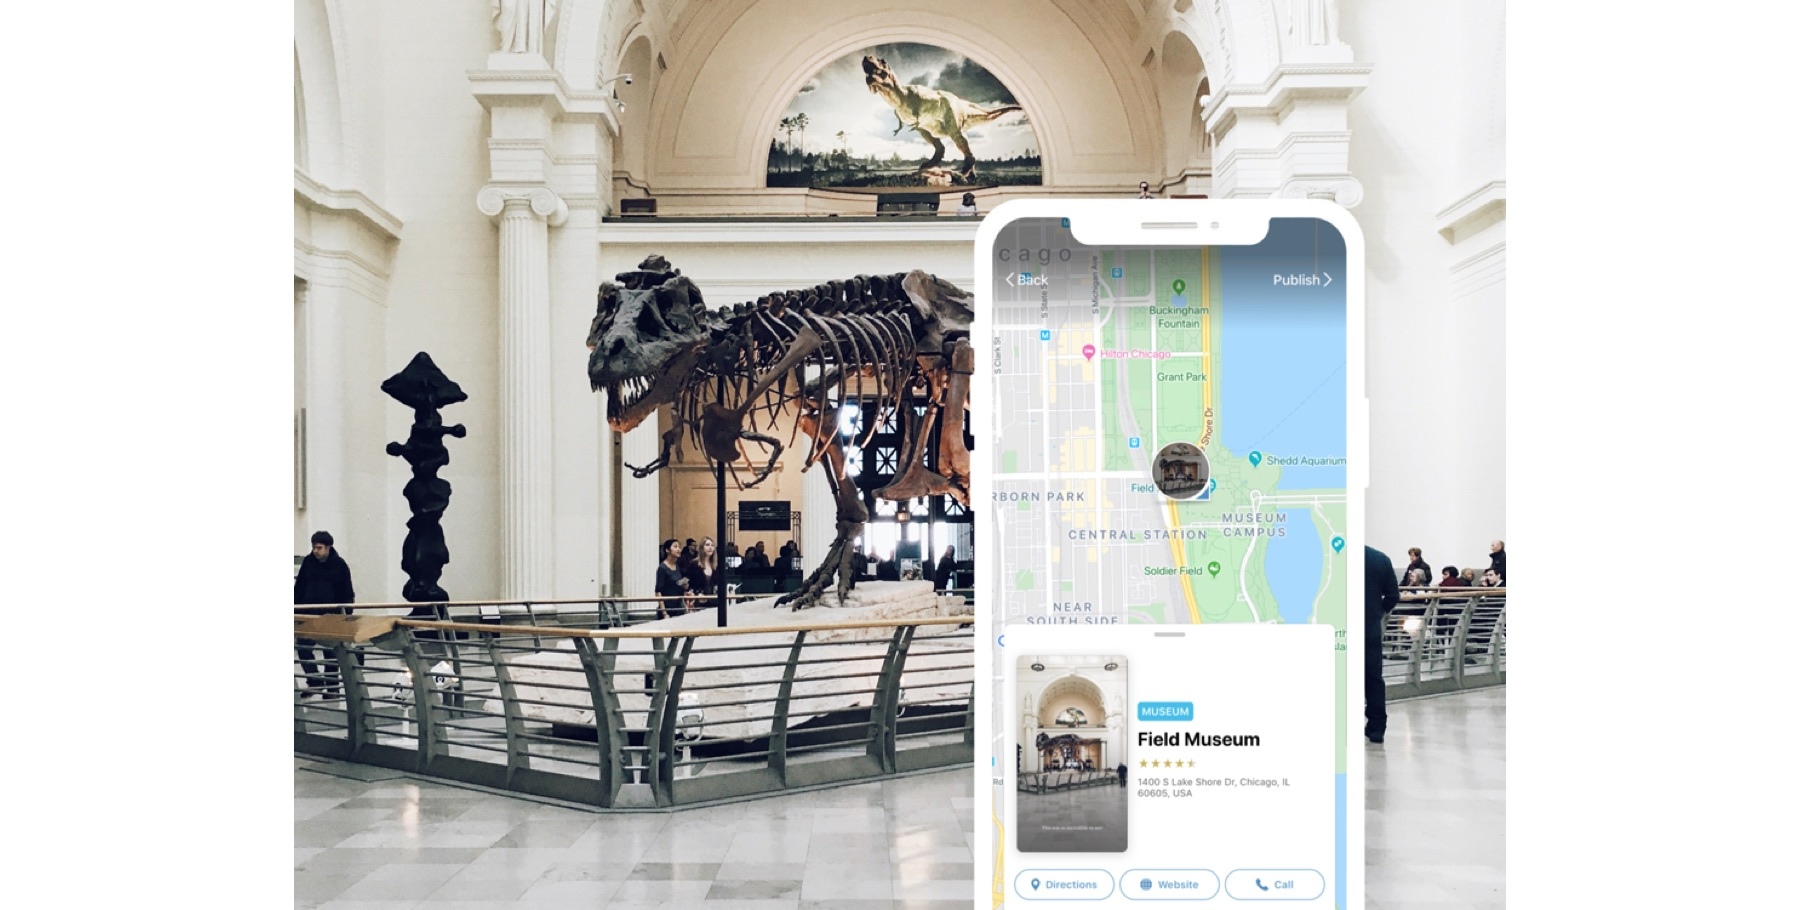 A dinosaur in a museum, in front of a phone showing a map of the museum location and name